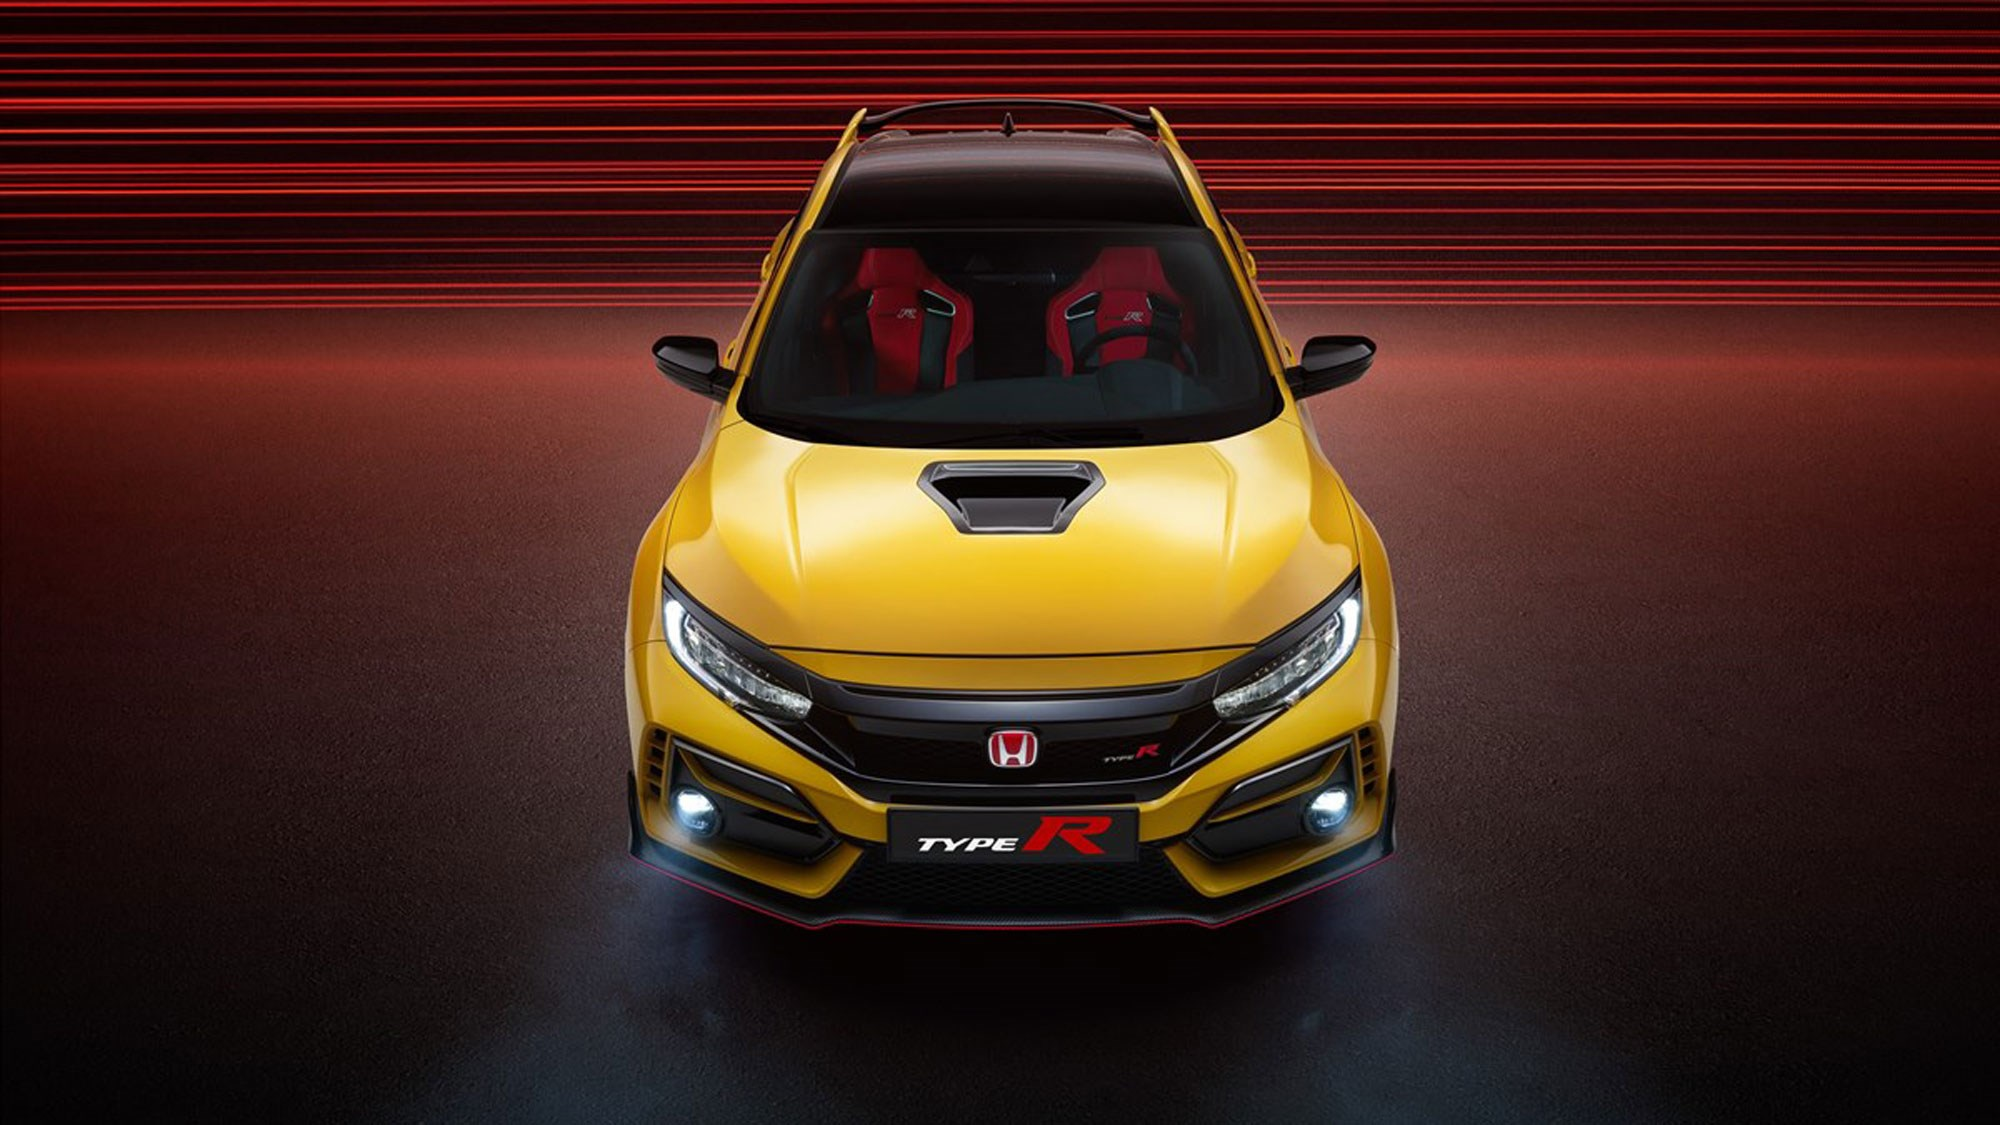 Honda Civic Type R: Limited Edition hot-hatch nabs Suzuka record